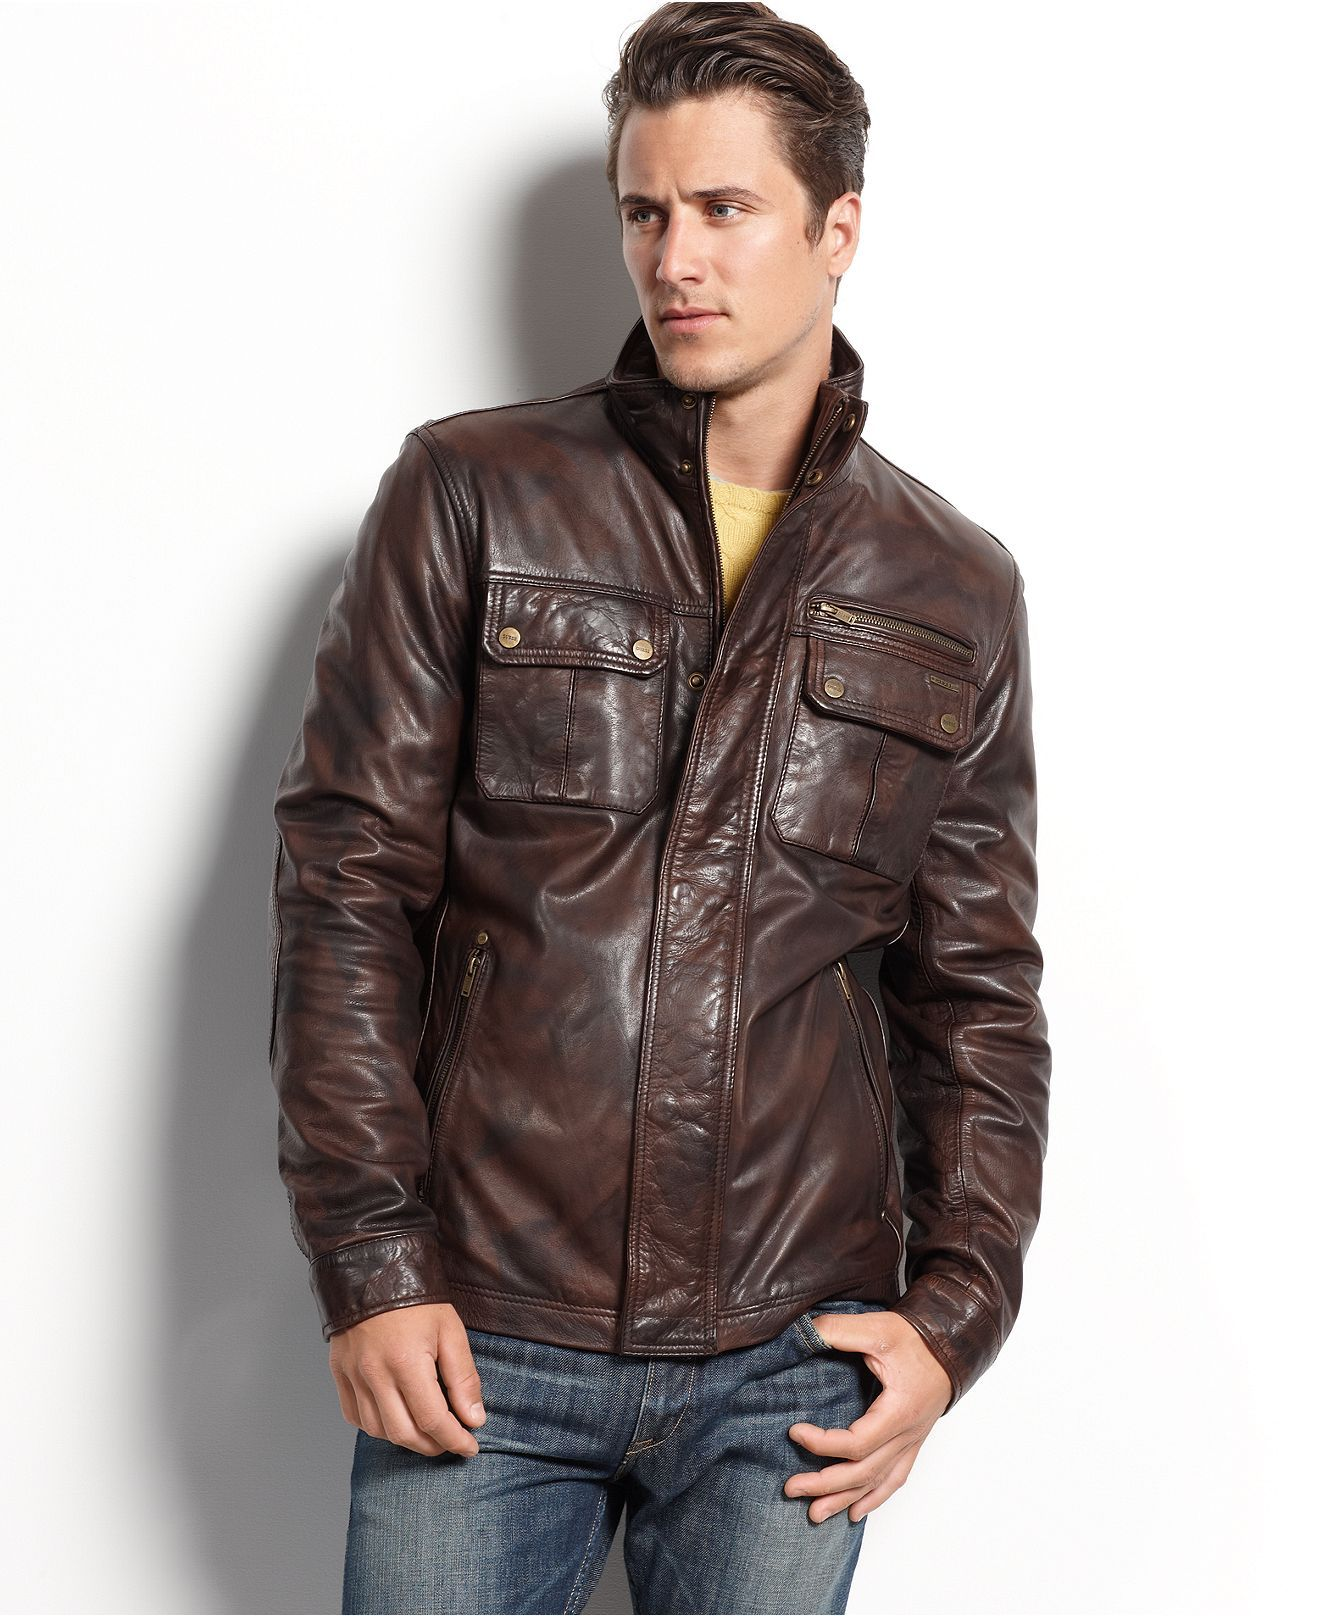 Guess Coat Medium Weight Leather Jacket Mens Coats Jackets Macy S 369 Leather Jacket Men Stylish Leather Jacket Leather Jacket [ 1616 x 1320 Pixel ]